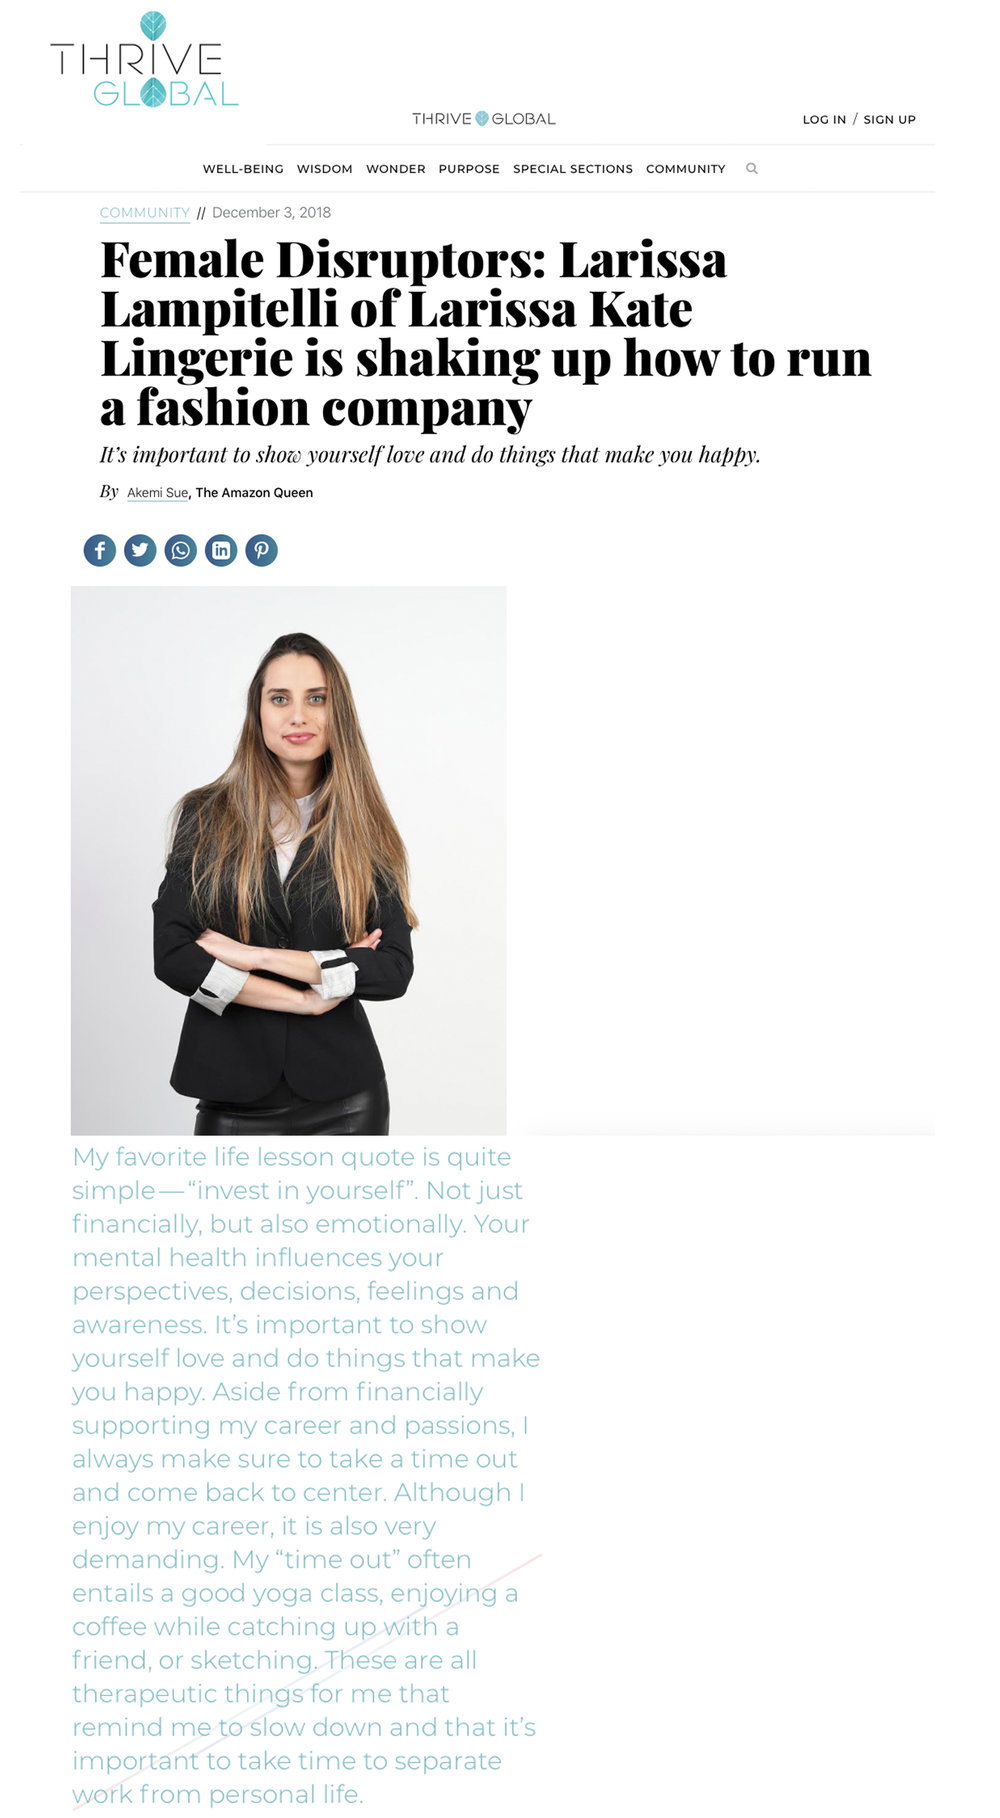 https://thriveglobal.com/stories/female-disruptors-larissa-lampitelli-of-larissa-kate-lingerie-is-shaking-up-how-to-run-a-fashion-company/  &  https://medium.com/authority-magazine/female-disruptors-larissa-lampitelli-of-larissa-kate-lingerie-is-shaking-up-how-to-run-a-fashion-a4eec270cbda